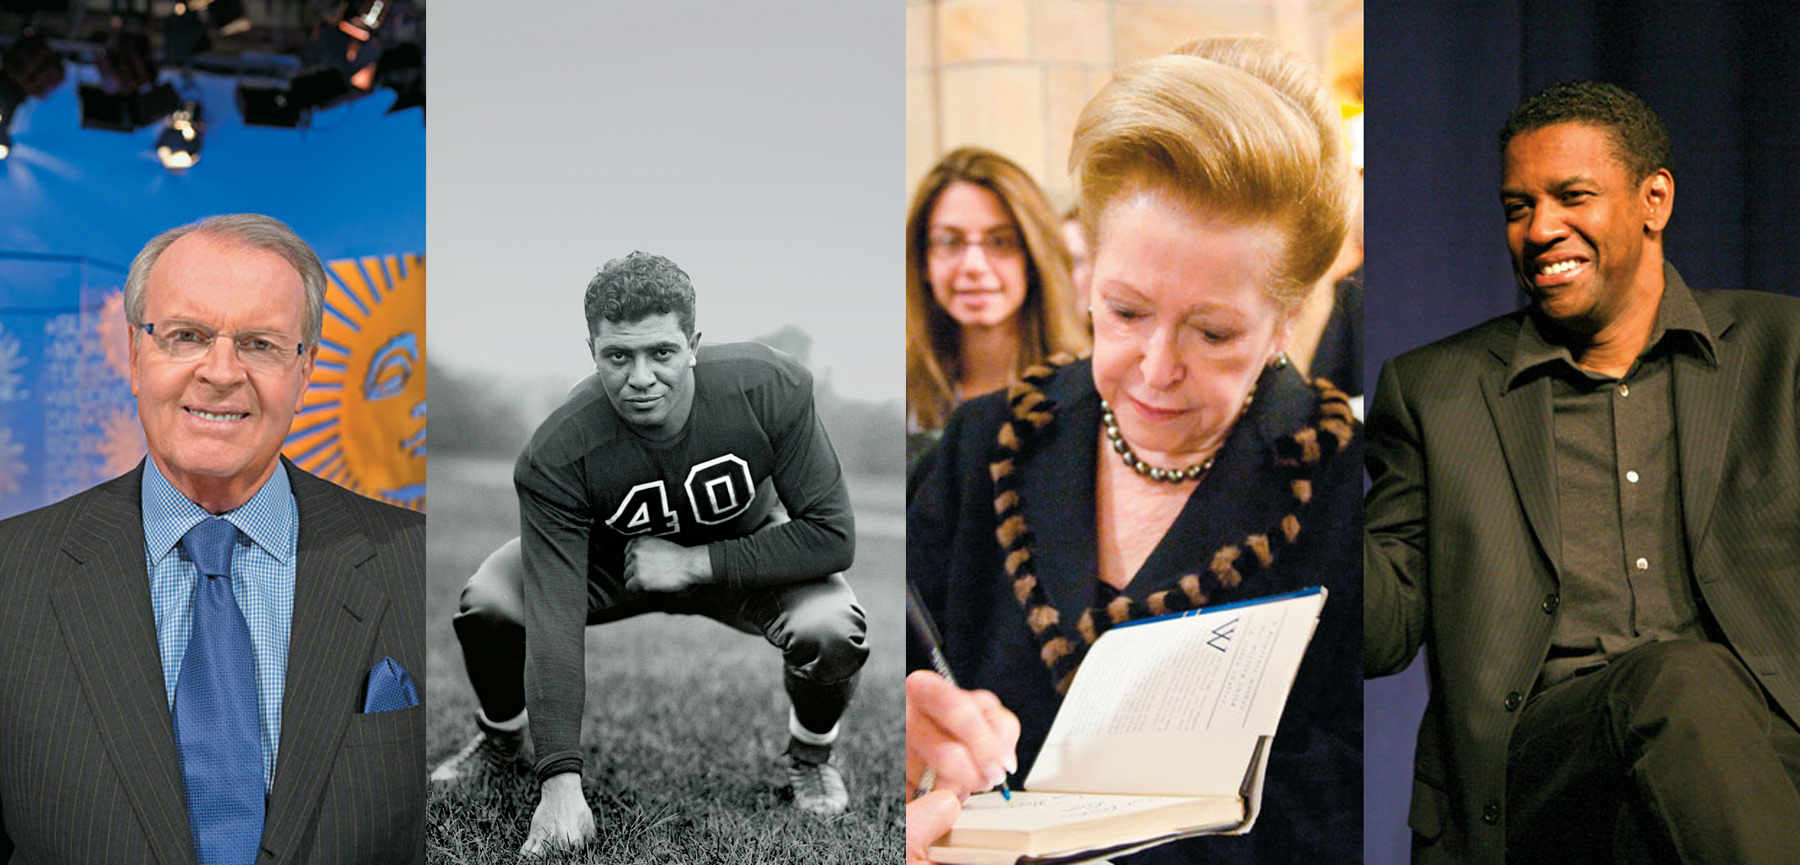 Notable Fordham alumni Charles Osgood, Vince Lombardi, Mary Higgins Clark, and Denzel Washington